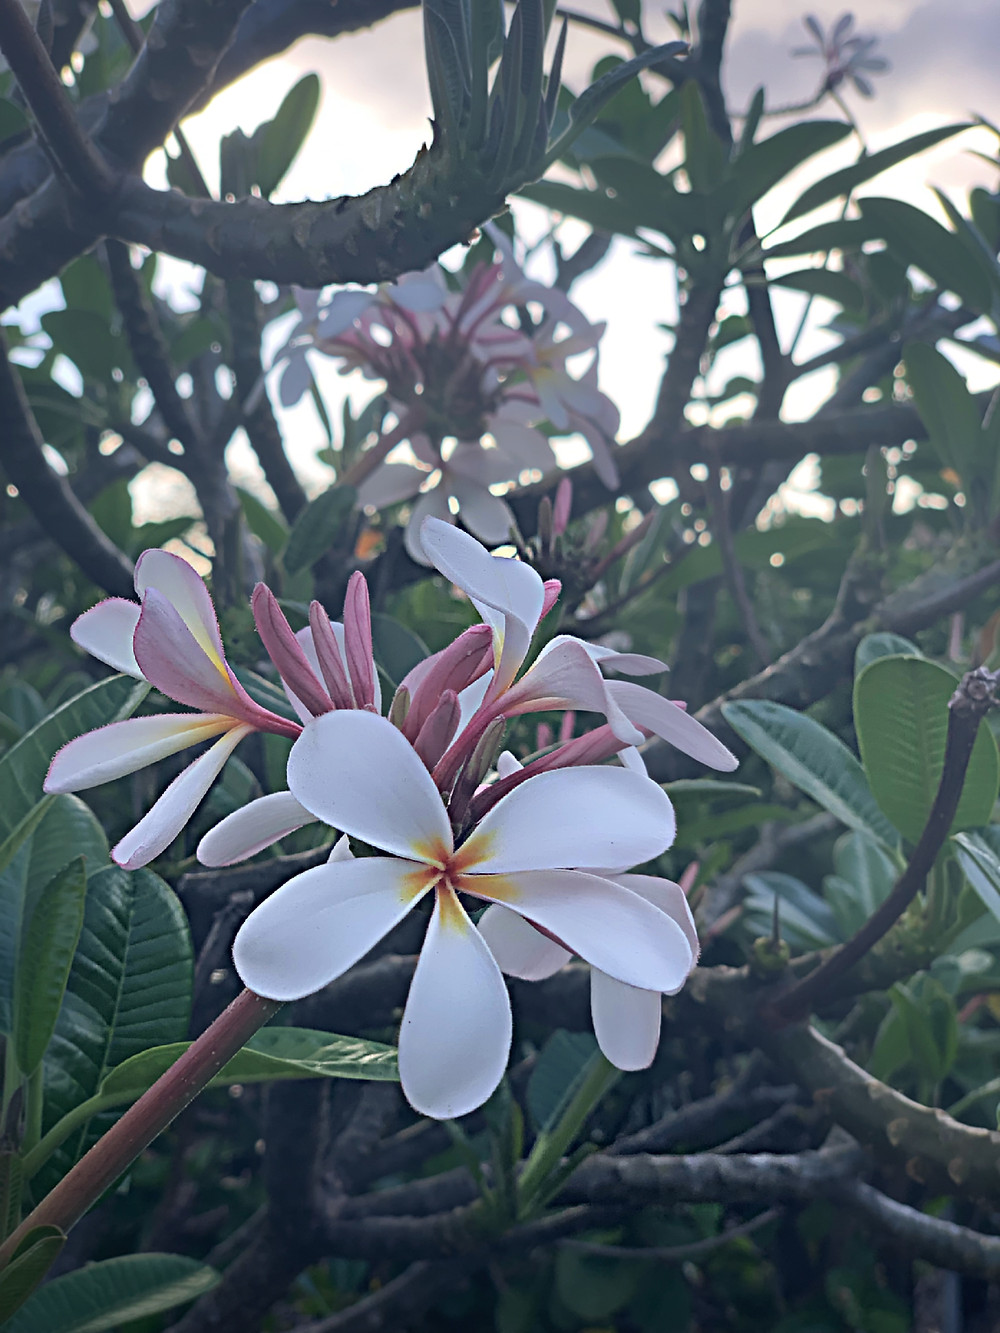 These beautiful plumeria's are resistant against the harsh conditions of Hawaii like the strong winds over by Waikoloa